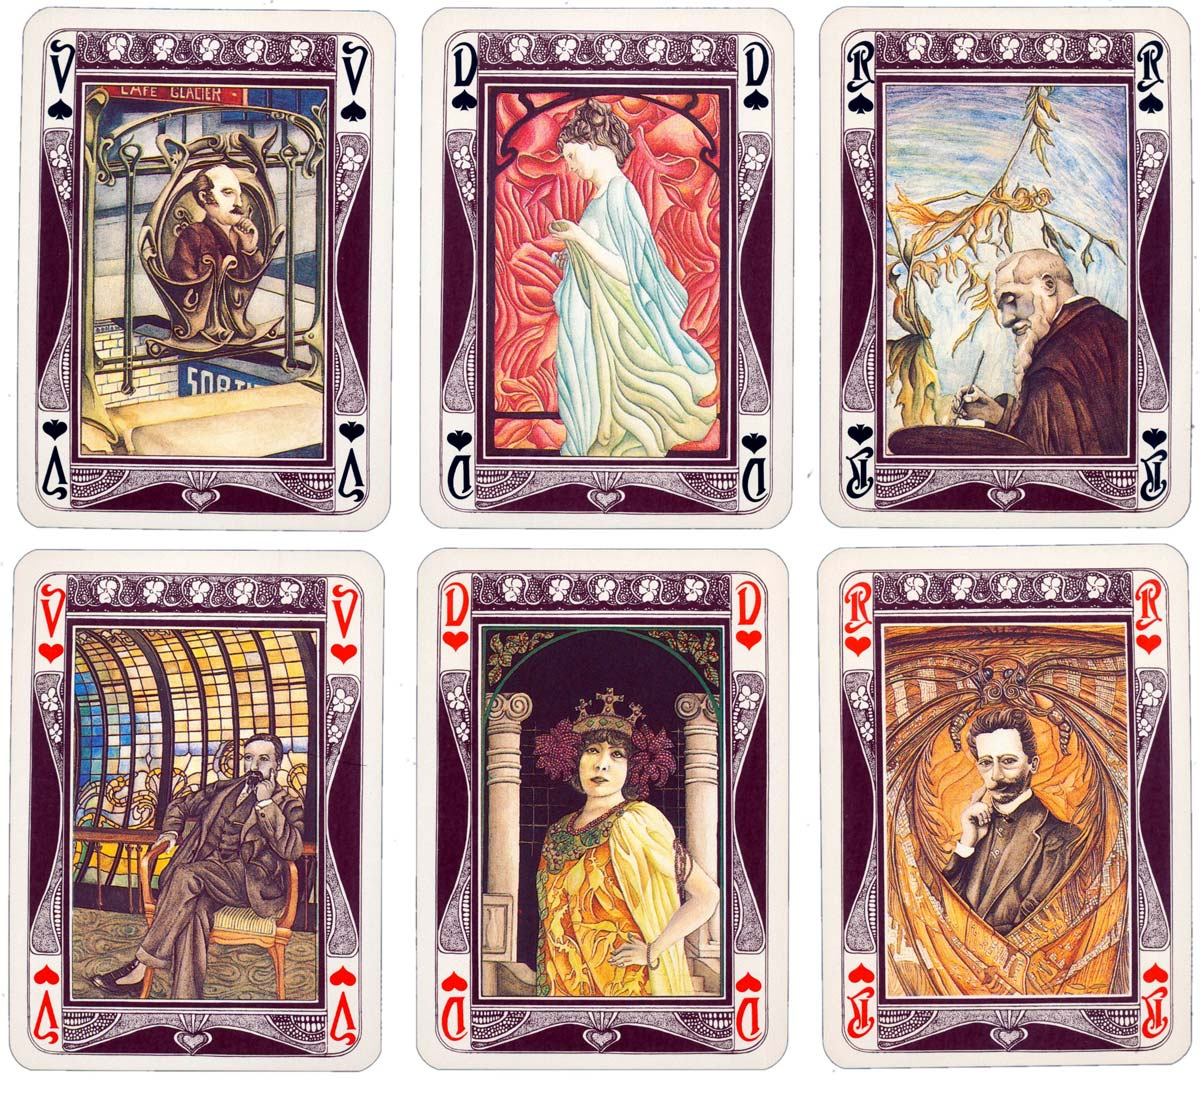 'Jeu de Cartes 1900' designed by Marie Christine Schira in the Art Nouveau or Jugendstil style, Grimaud, 1979